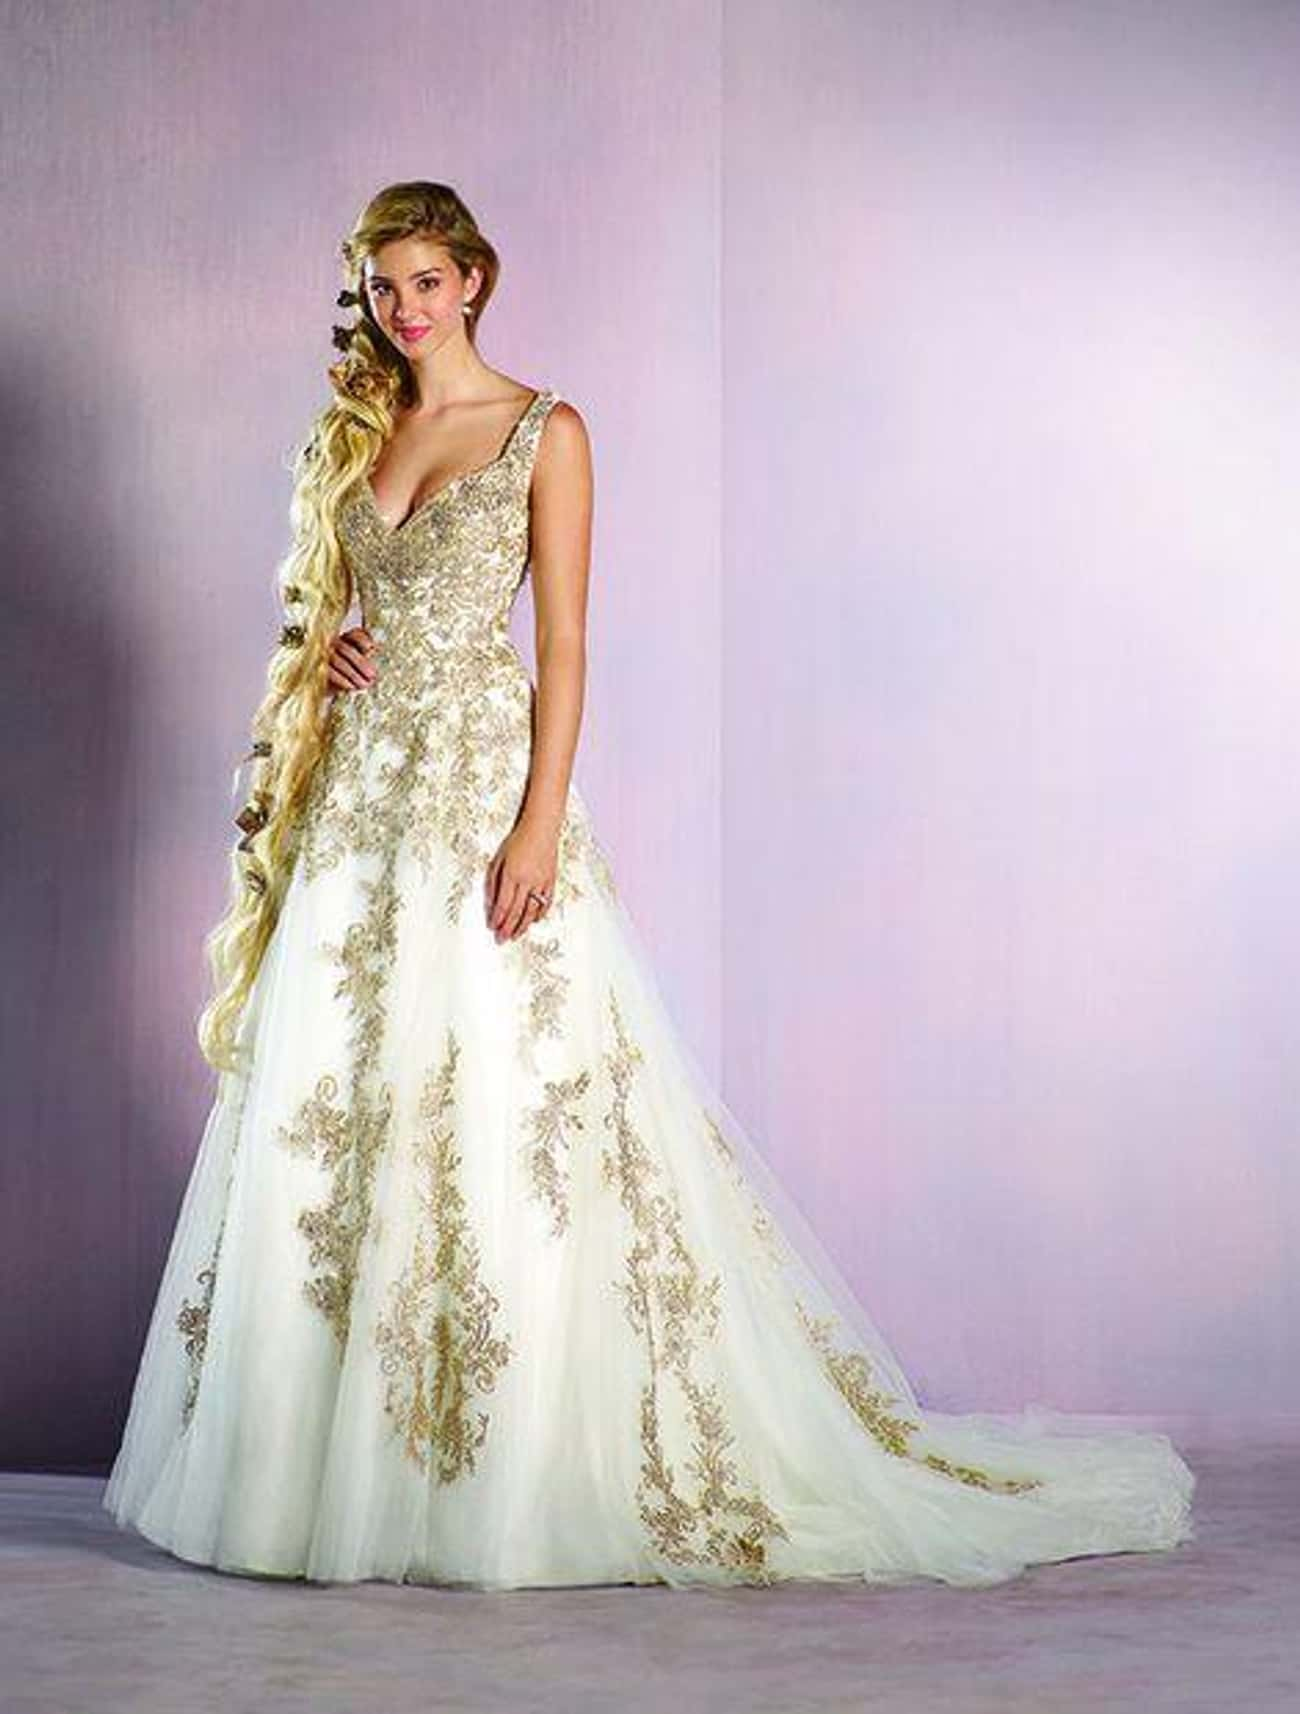 Rapunzel is listed (or ranked) 4 on the list 25 Gorgeous Wedding Dresses Inspired By Disney